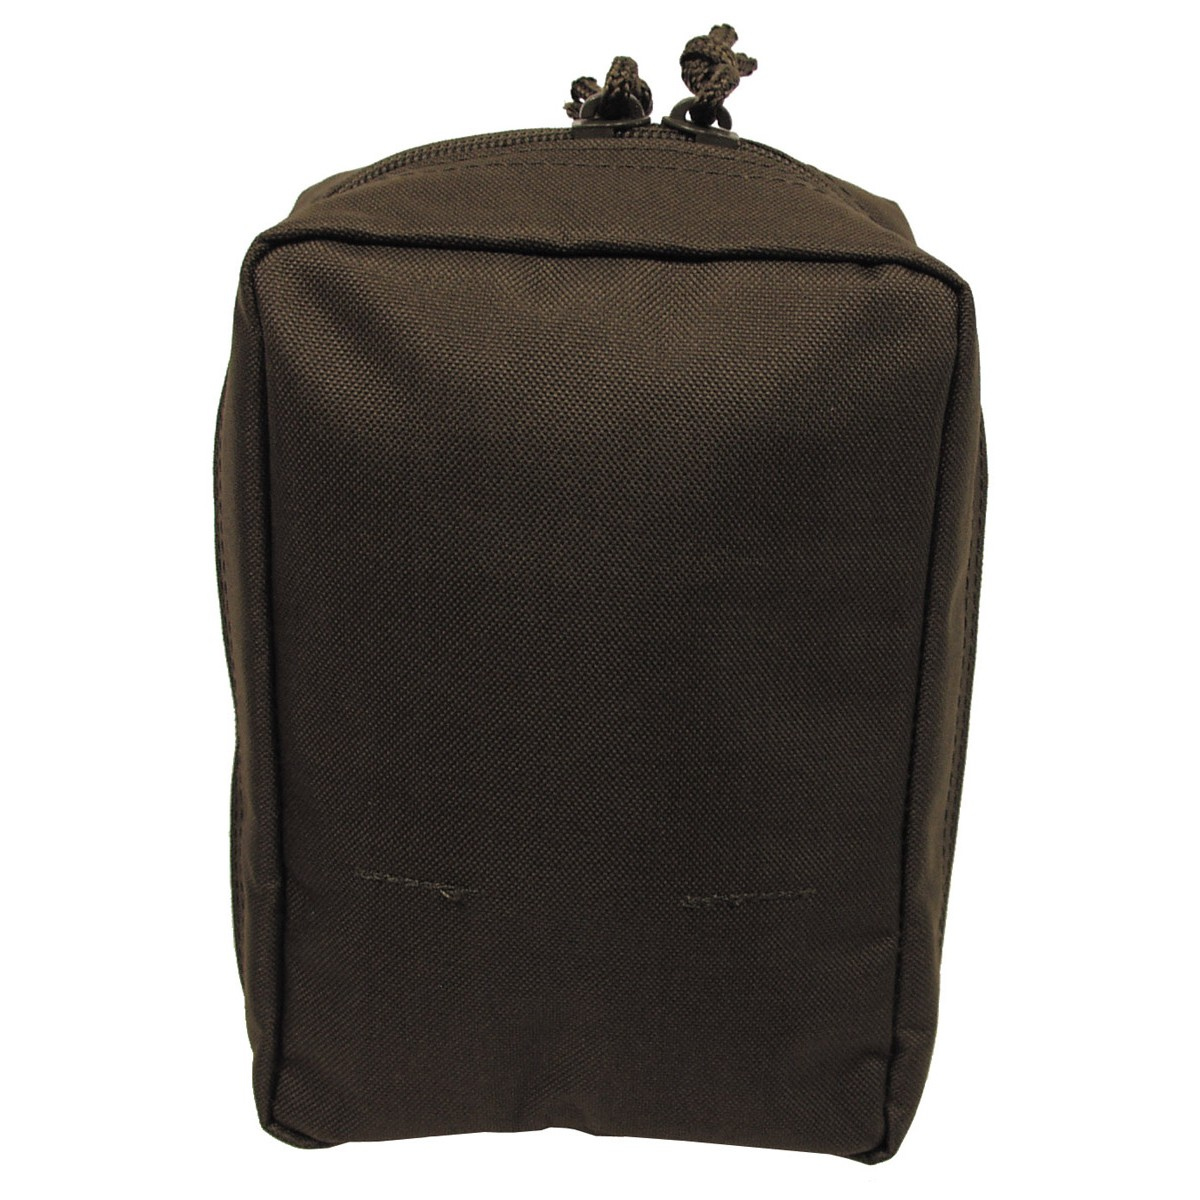 Tactical Utility Mollle Small Pouch - OD Green